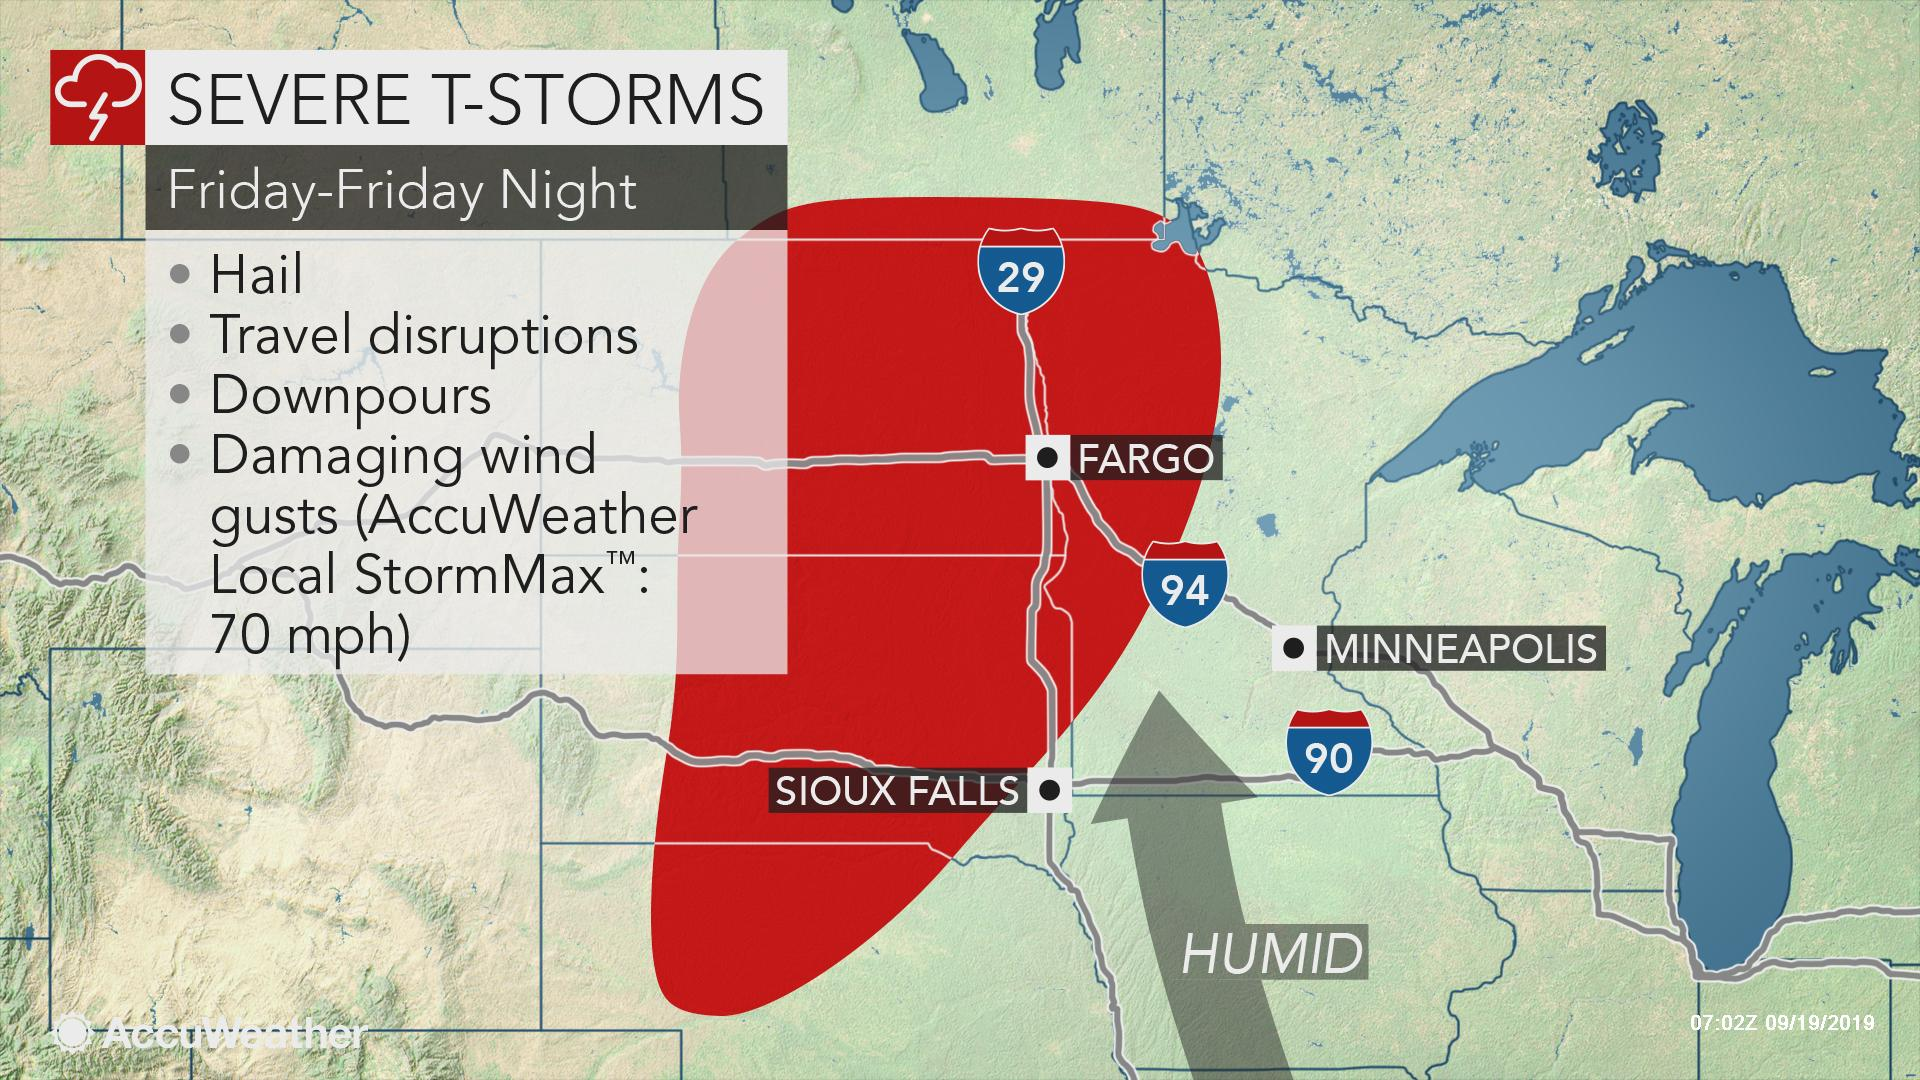 Severe storms to precede cooldown across northern Plains late Friday